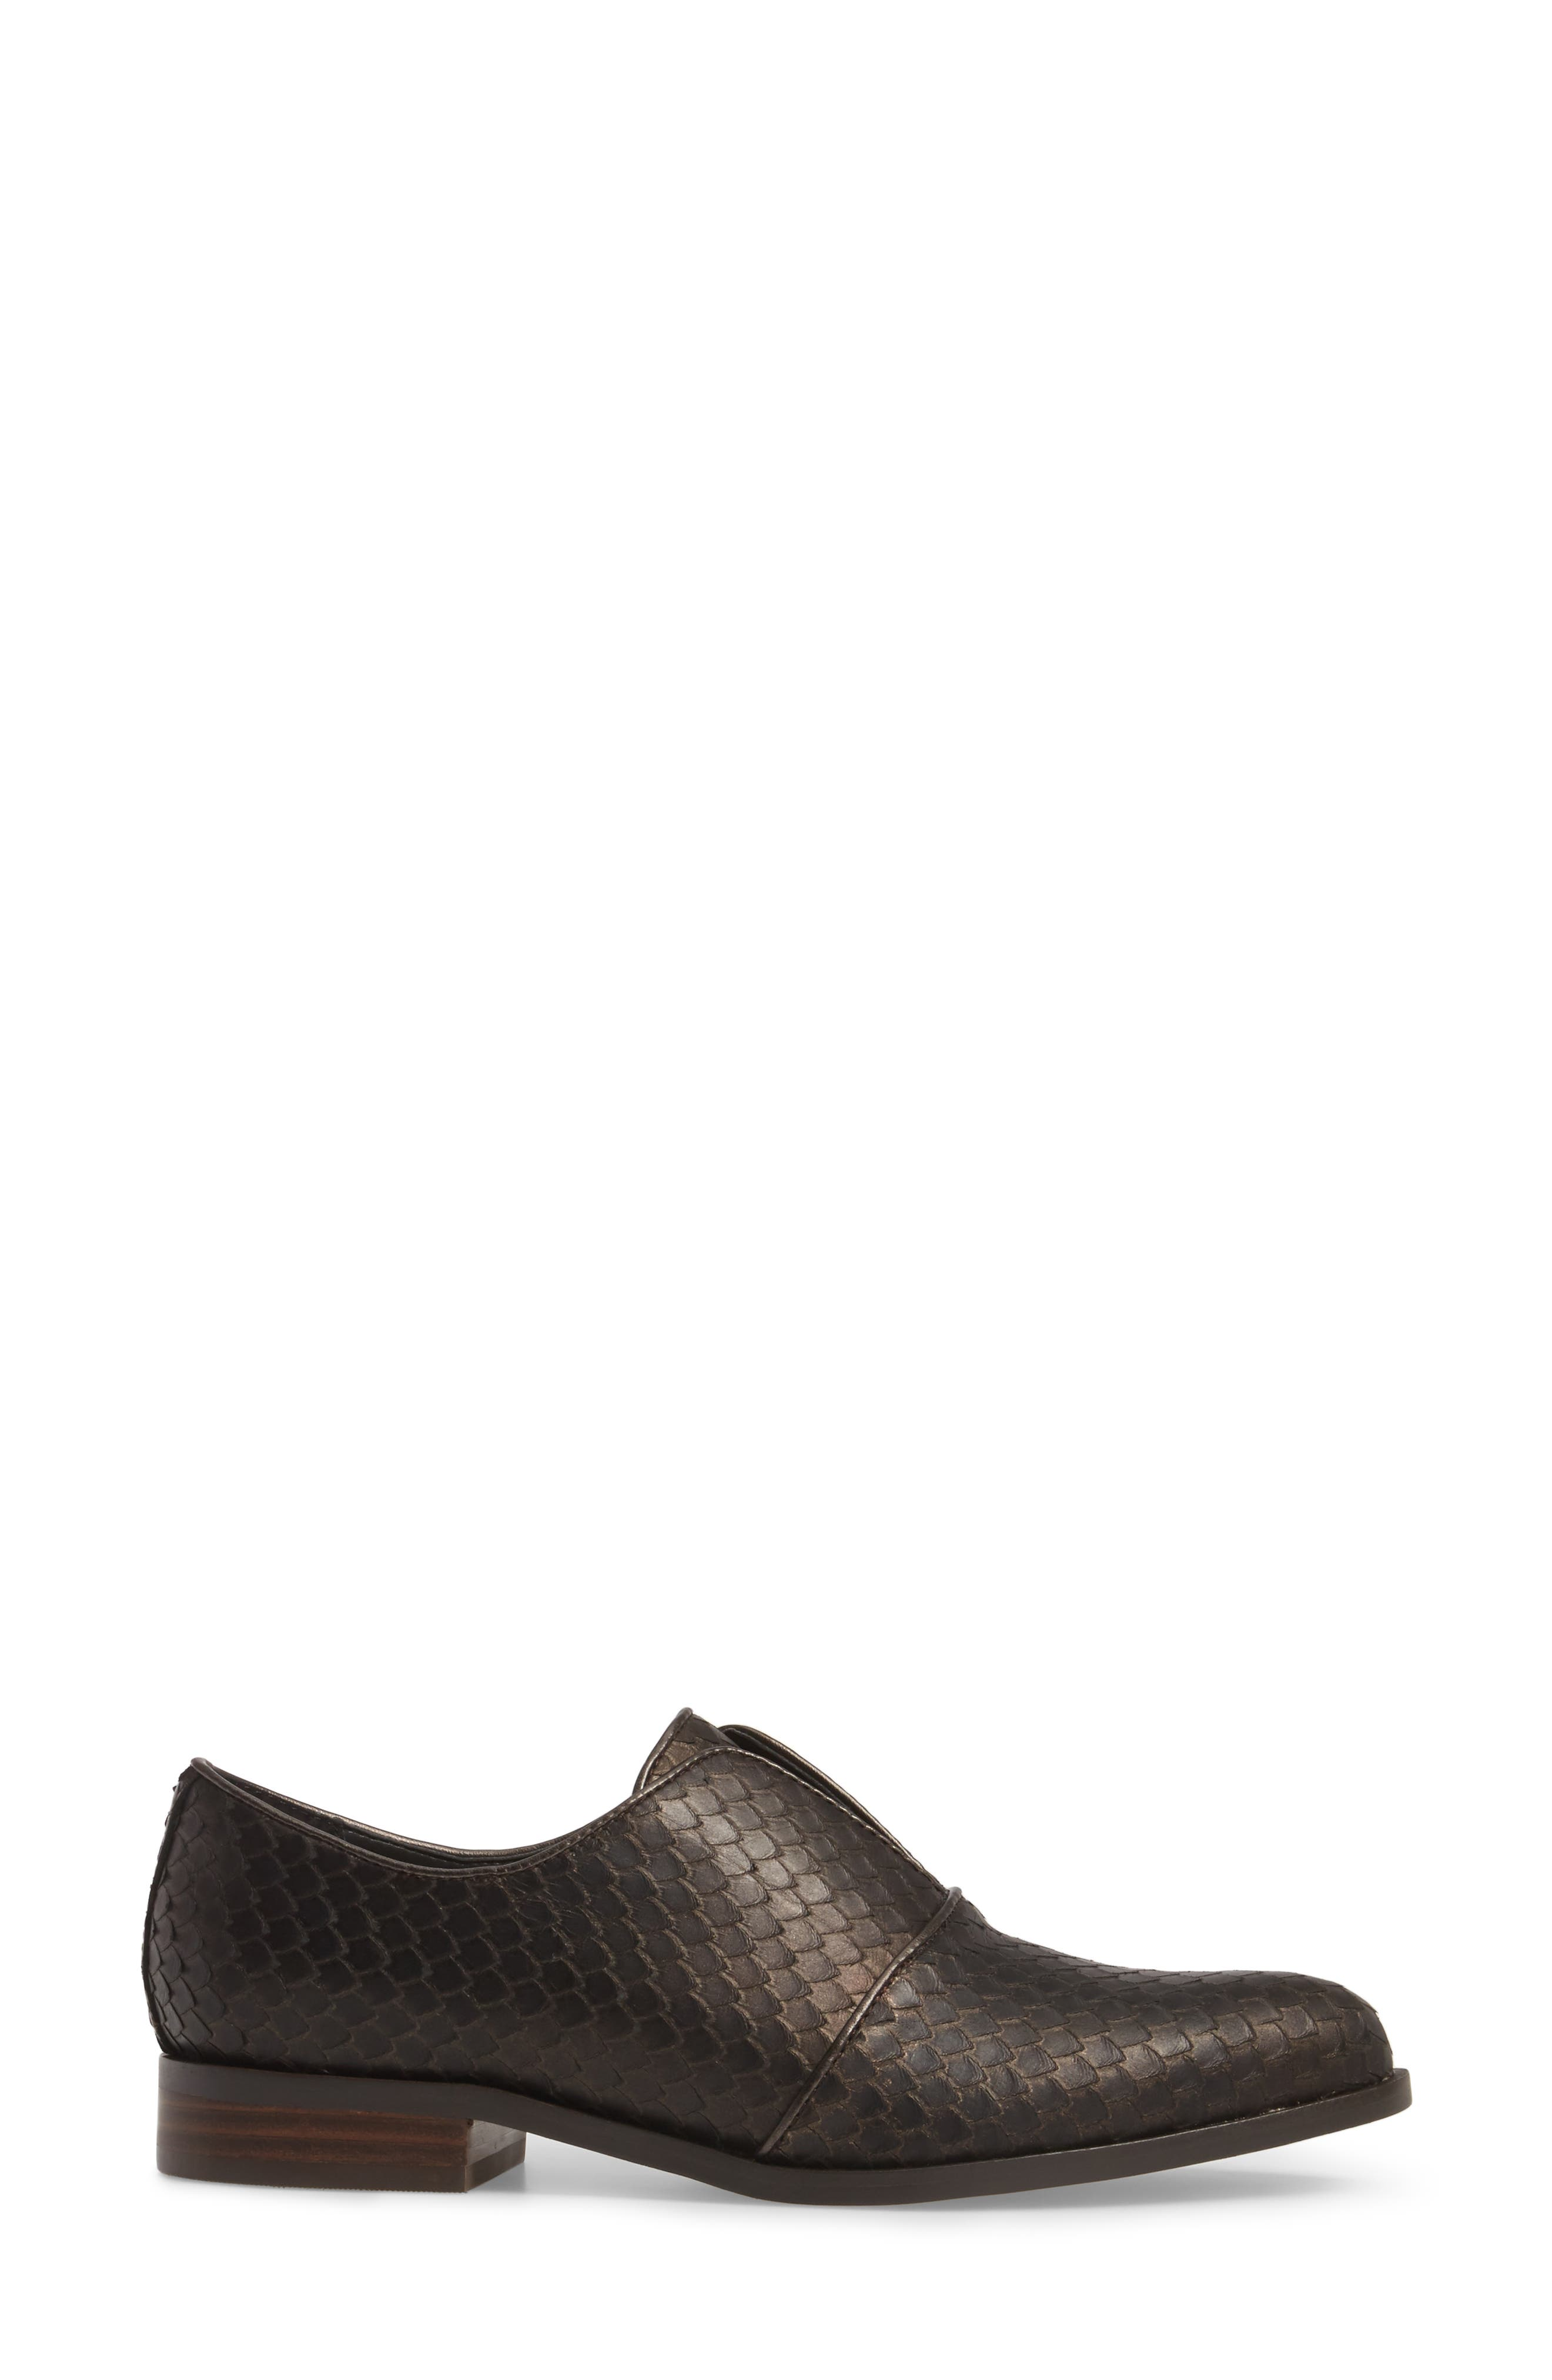 Isola Maria Slip-On Oxford,                             Alternate thumbnail 3, color,                             T. MORO BROWN LEATHER